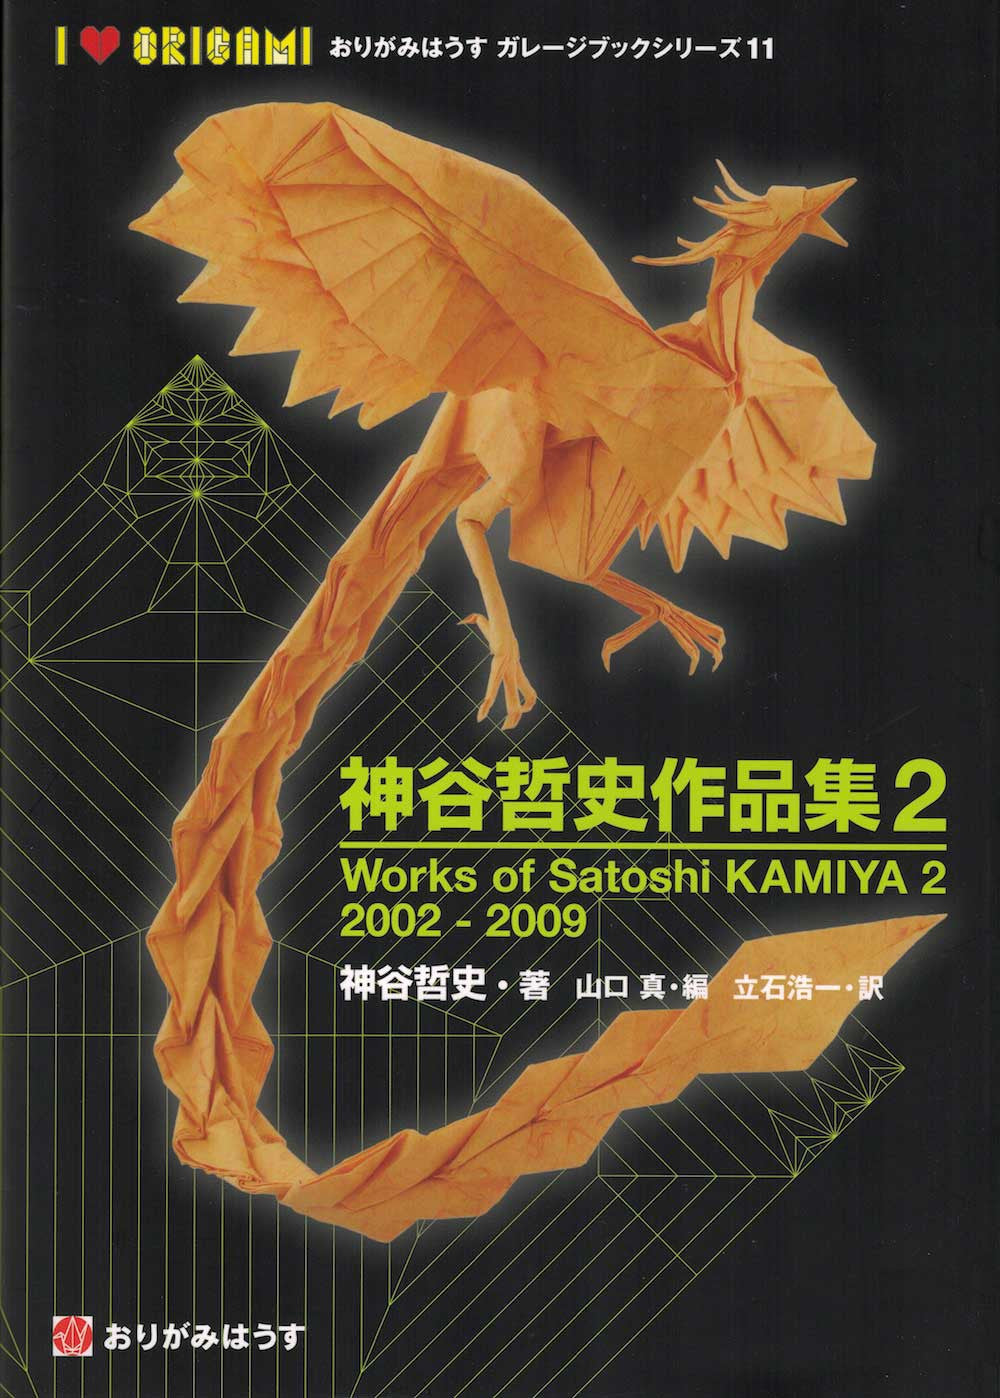 Books Complex Paper Tree The Origami Store Fearsome Ancient Dragon Designed By Satoshi Kamiya No Online Diagrams Works Of 2 2002 2009